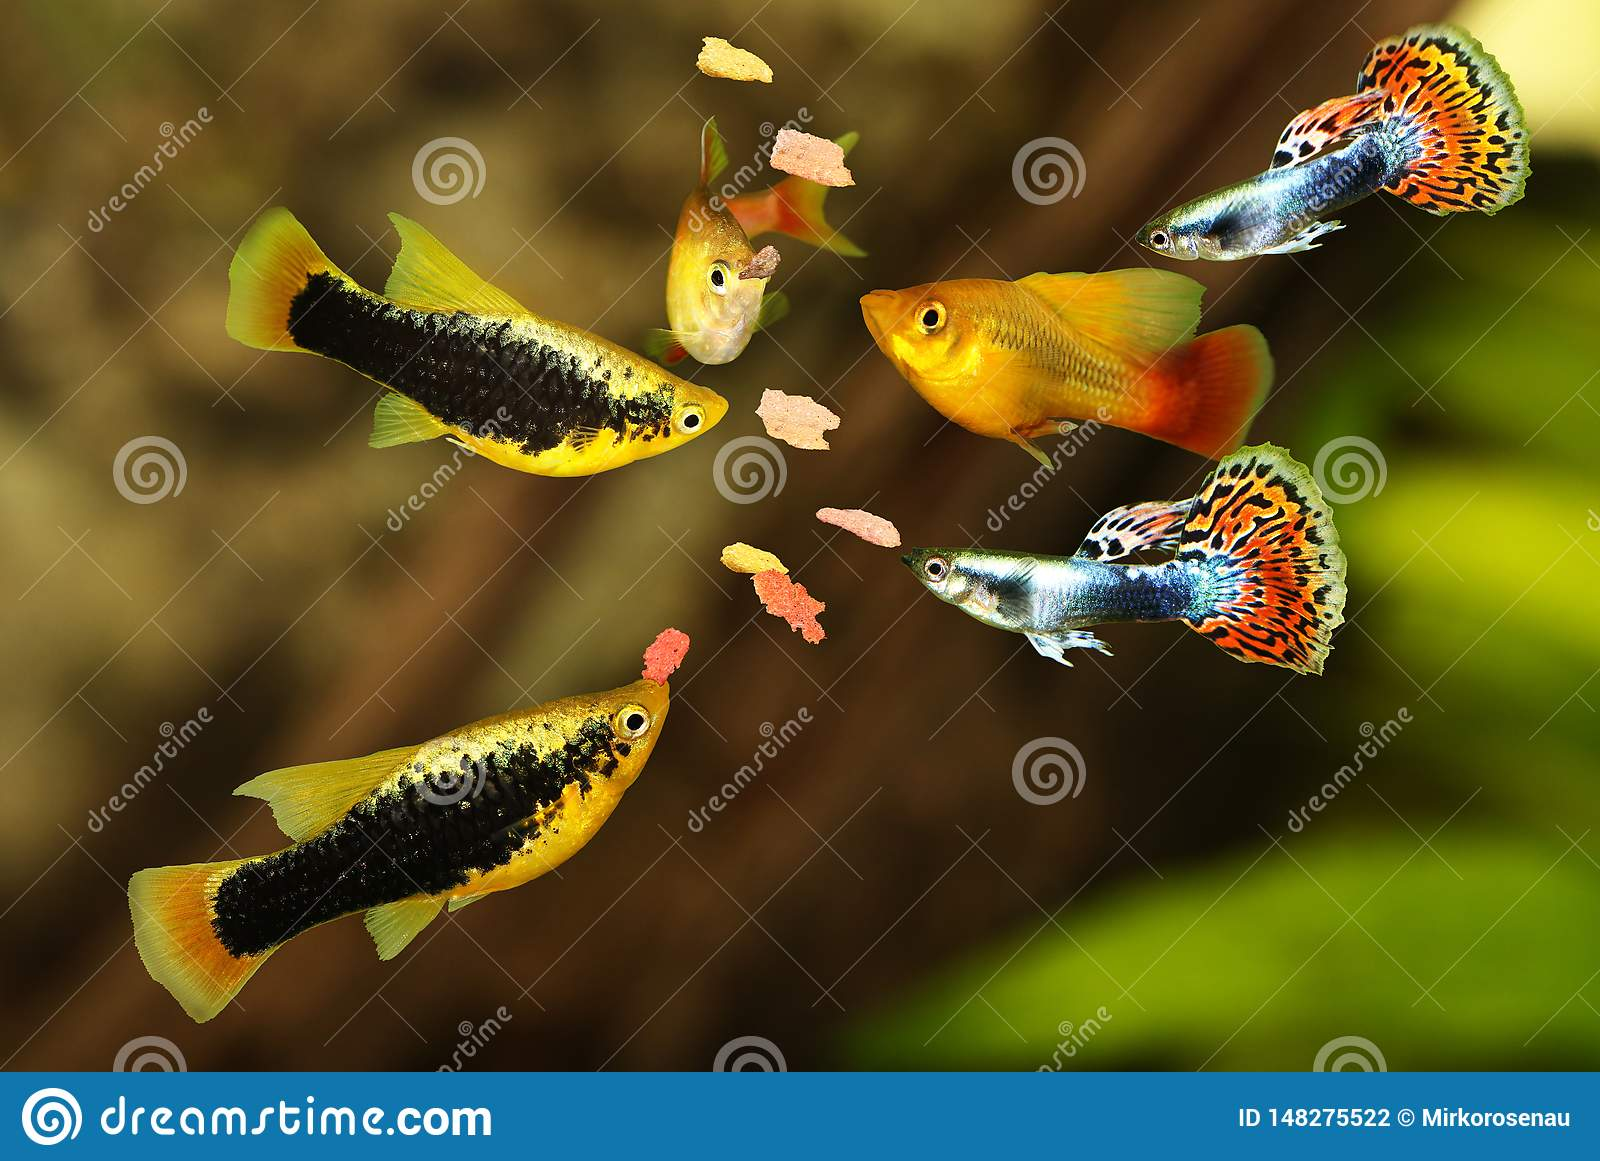 Feeding aquarium fish eating flake food swarm feeding tetra aquarium fish